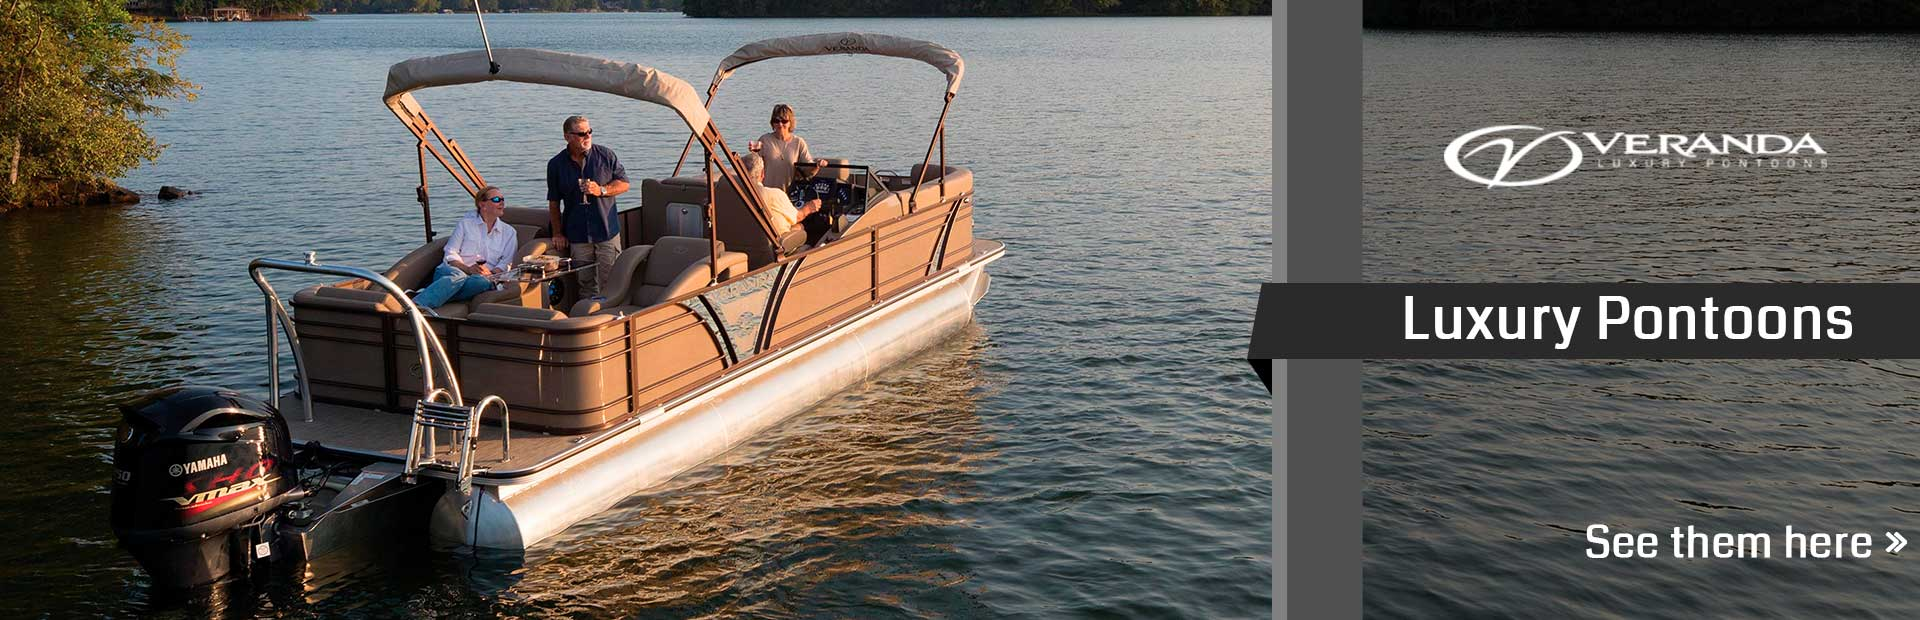 Veranda Luxury Pontoons: Click here to see the models.